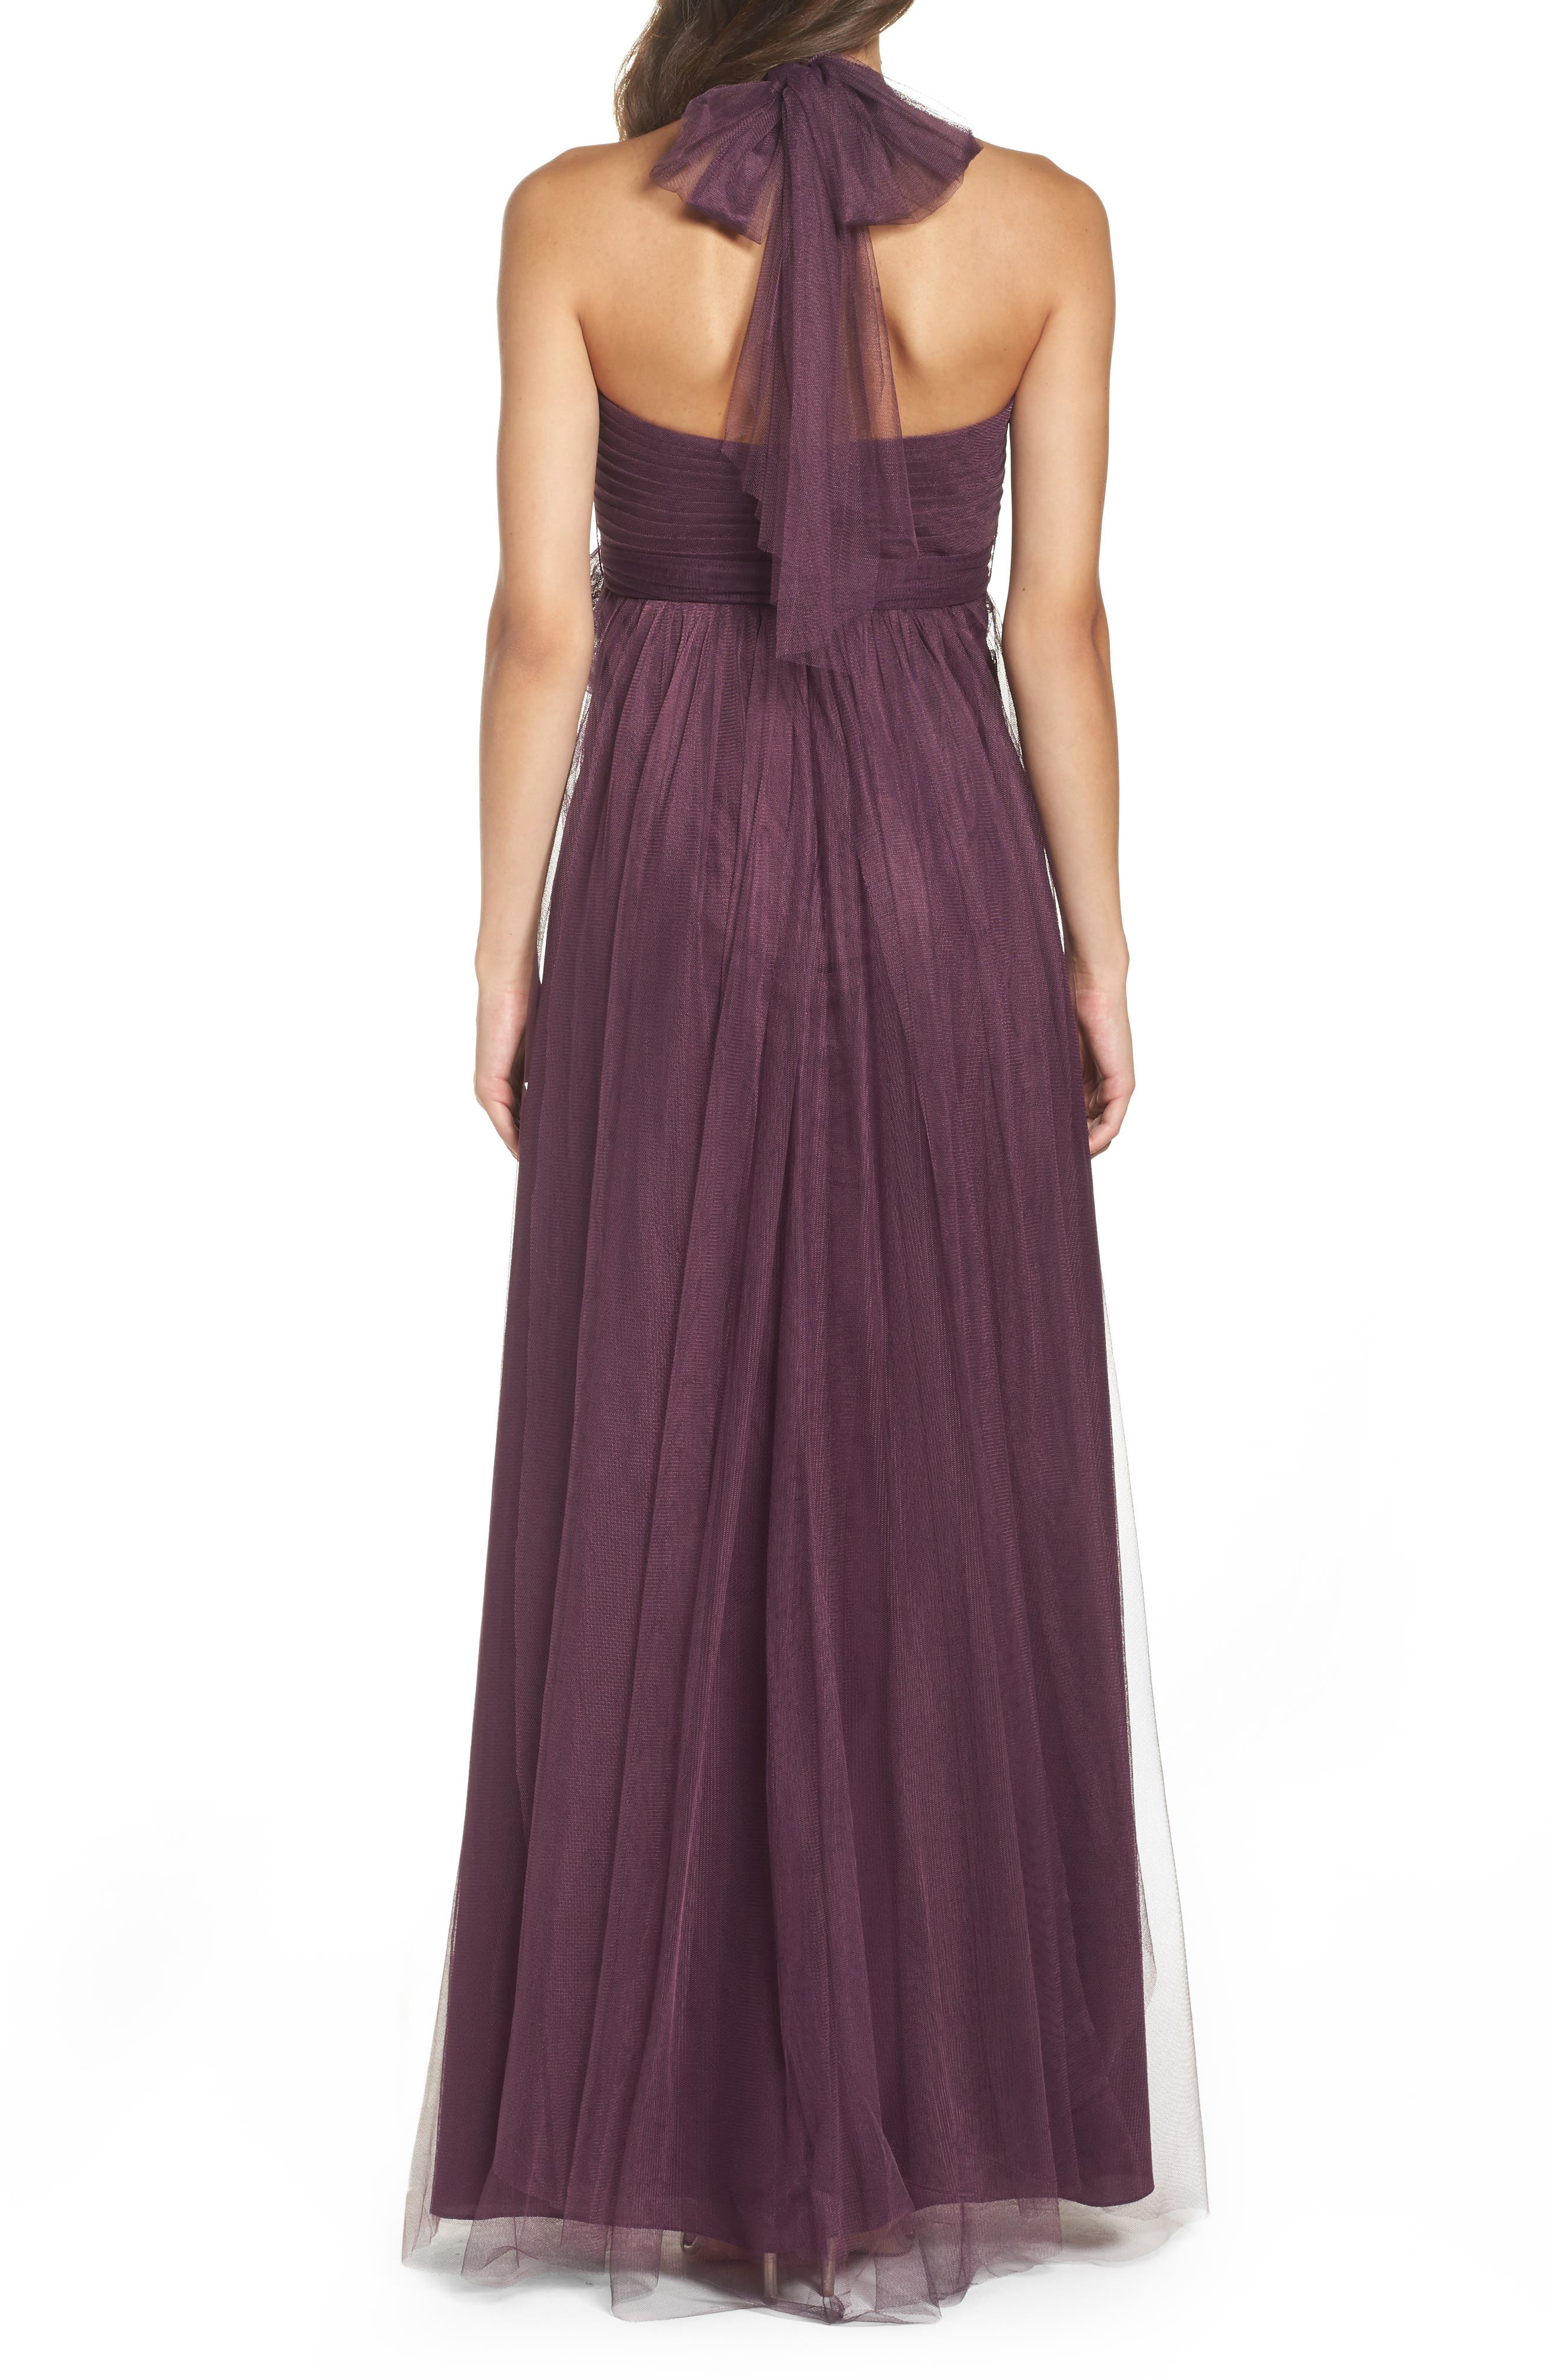 Annabelle Convertible Tulle Column Dress,                             Alternate thumbnail 68, color,